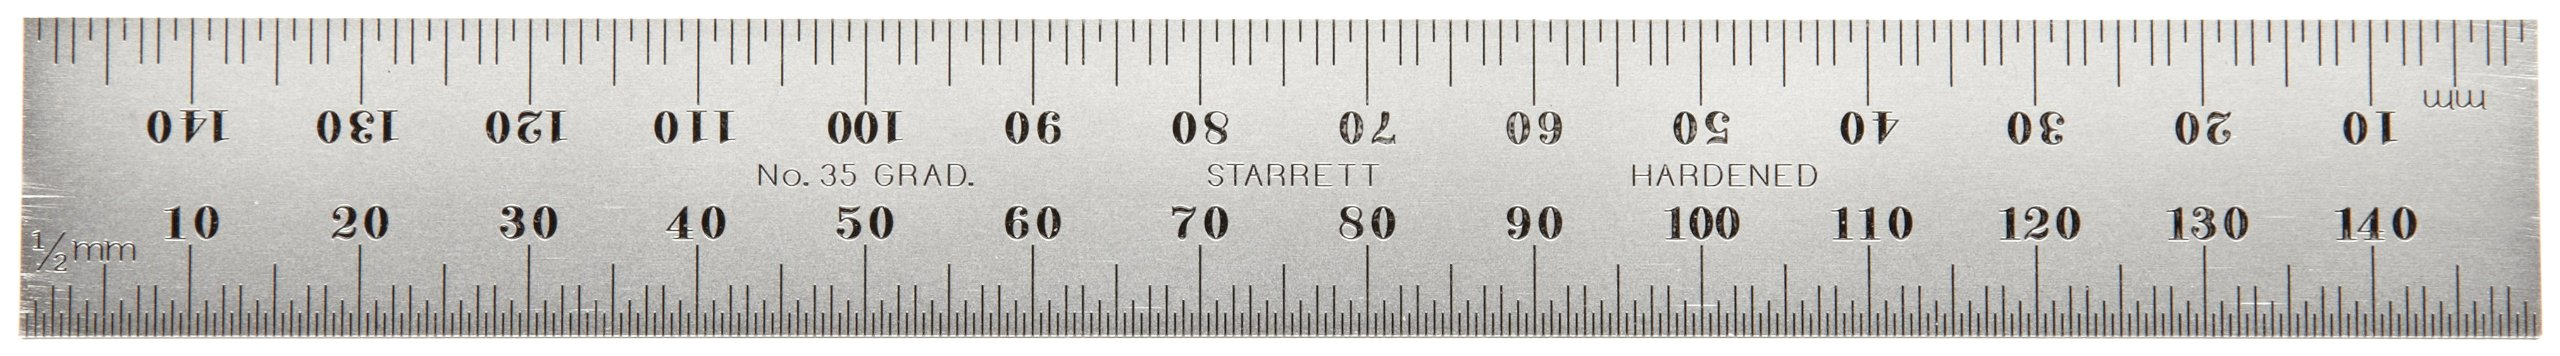 Starrett CB150-35 Millimeter Blade For Combination Squares, Sets And Bevel Protractors, Satin Chrome Finish, 19mm Width, 2mm Thickness, 150mm Size